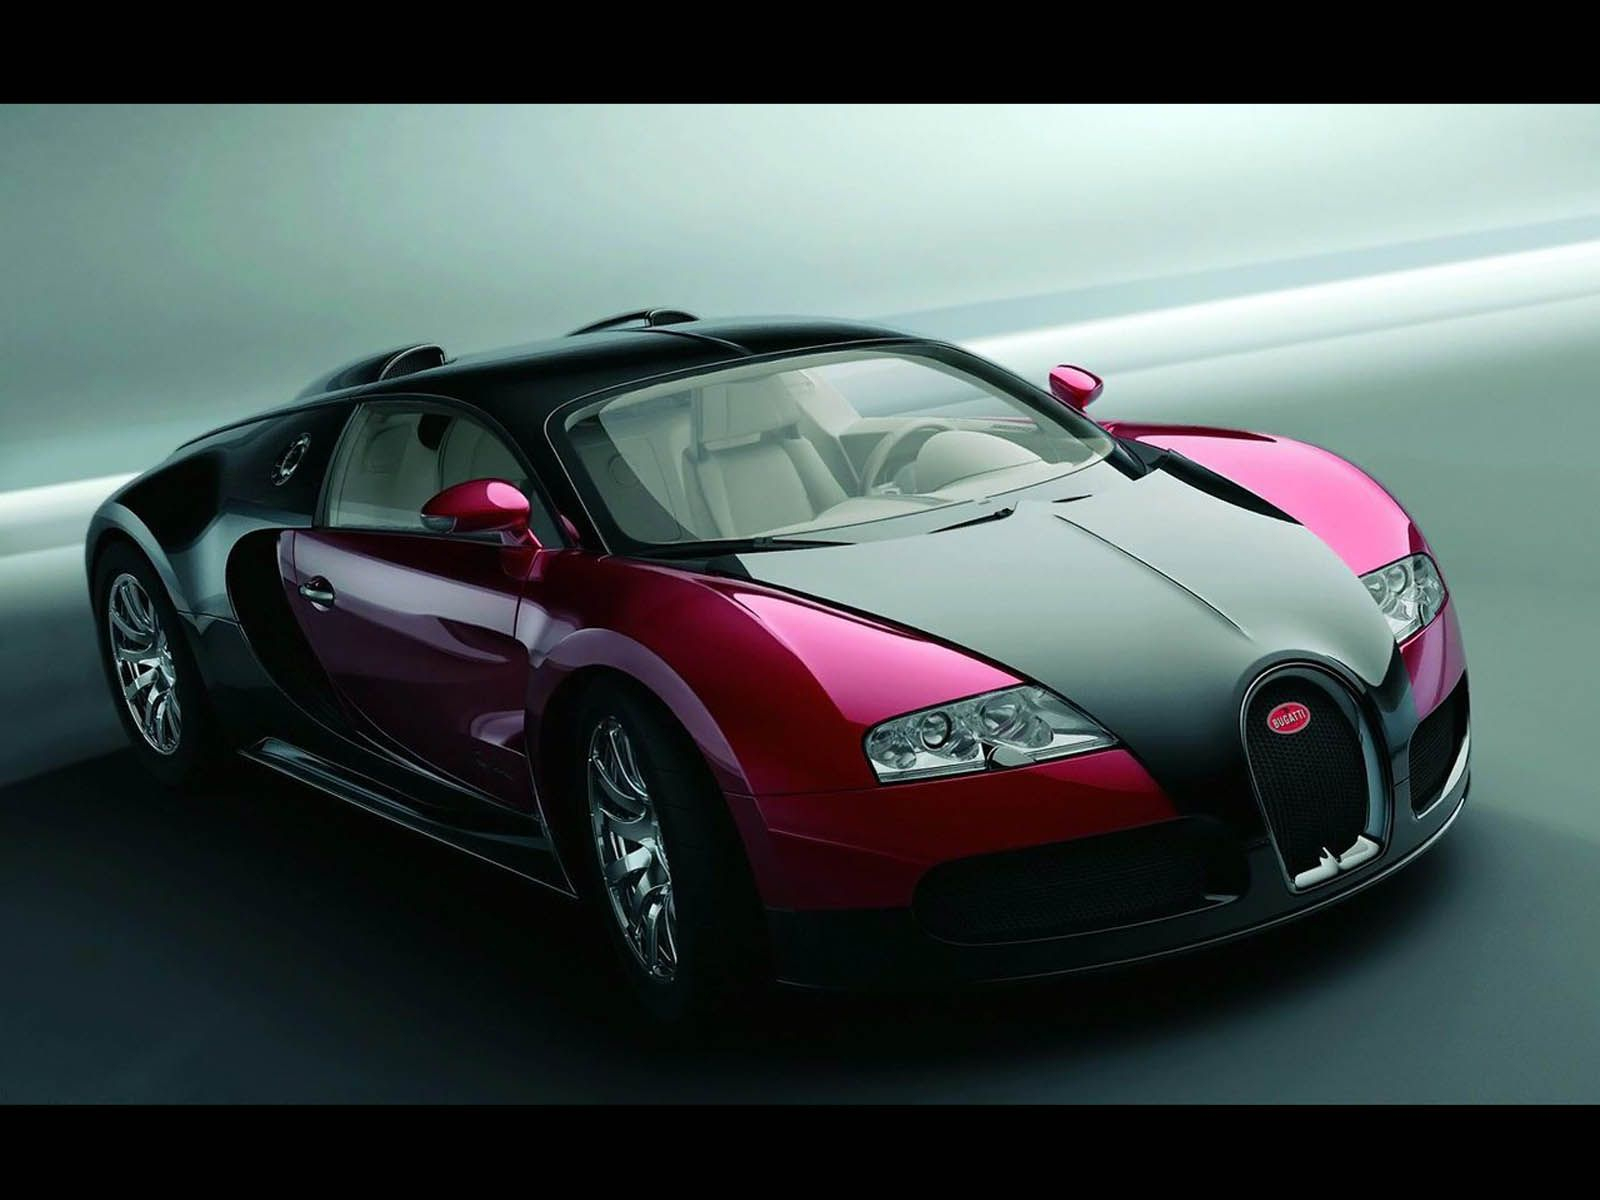 Currently, it is the 5th fastest car in the world with a top speed ...